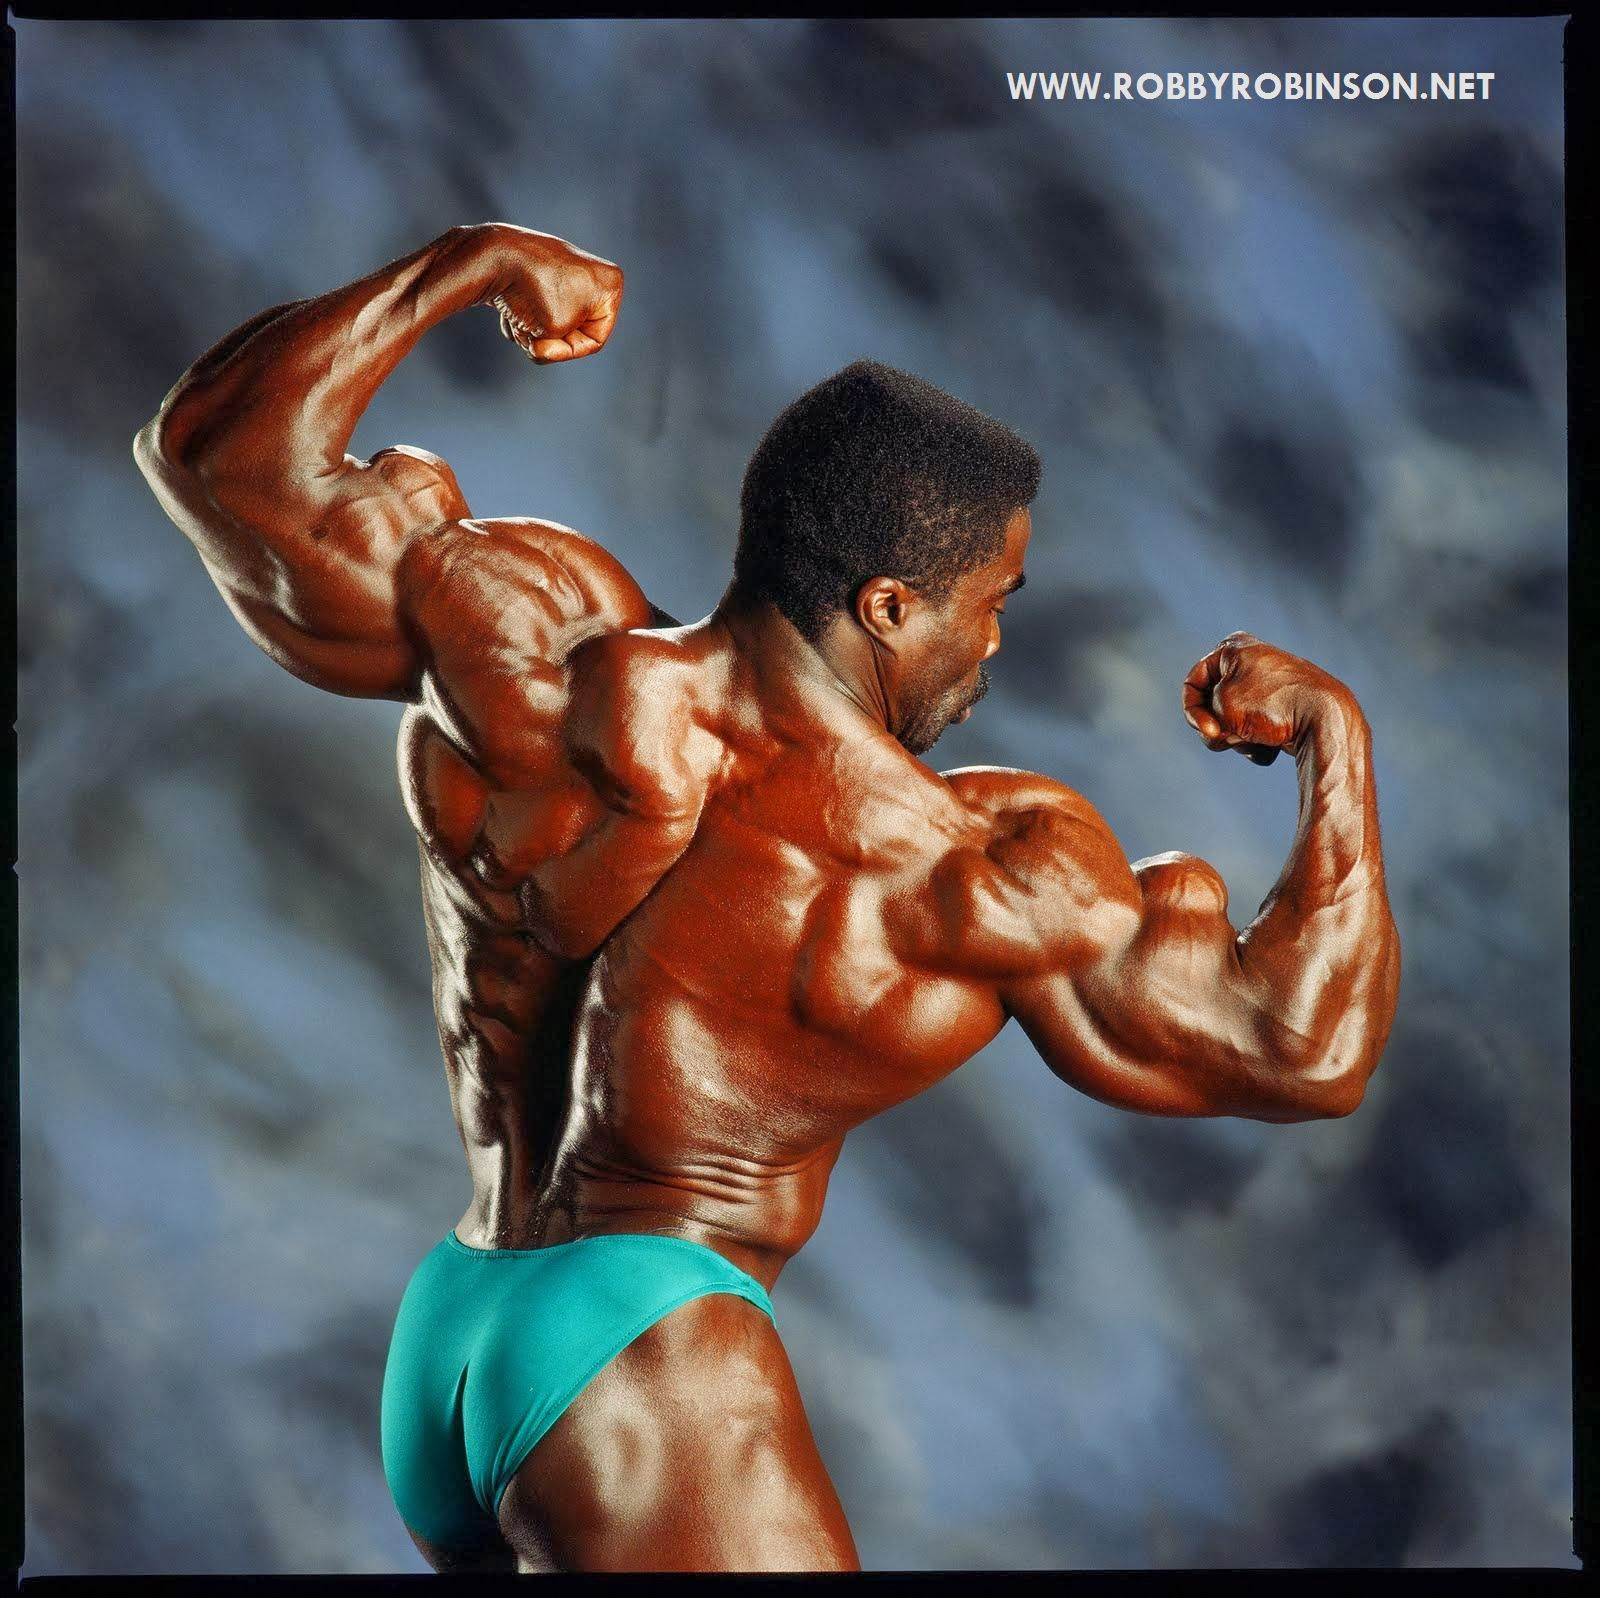 ROBBY ROBINSON BY MIKE NEVEUX FOR IRON MAN MAGAZINE - REAR DOUBLE BICEPS CURLS ● www.robbyrobinson.net//anabolic-pack.php ●